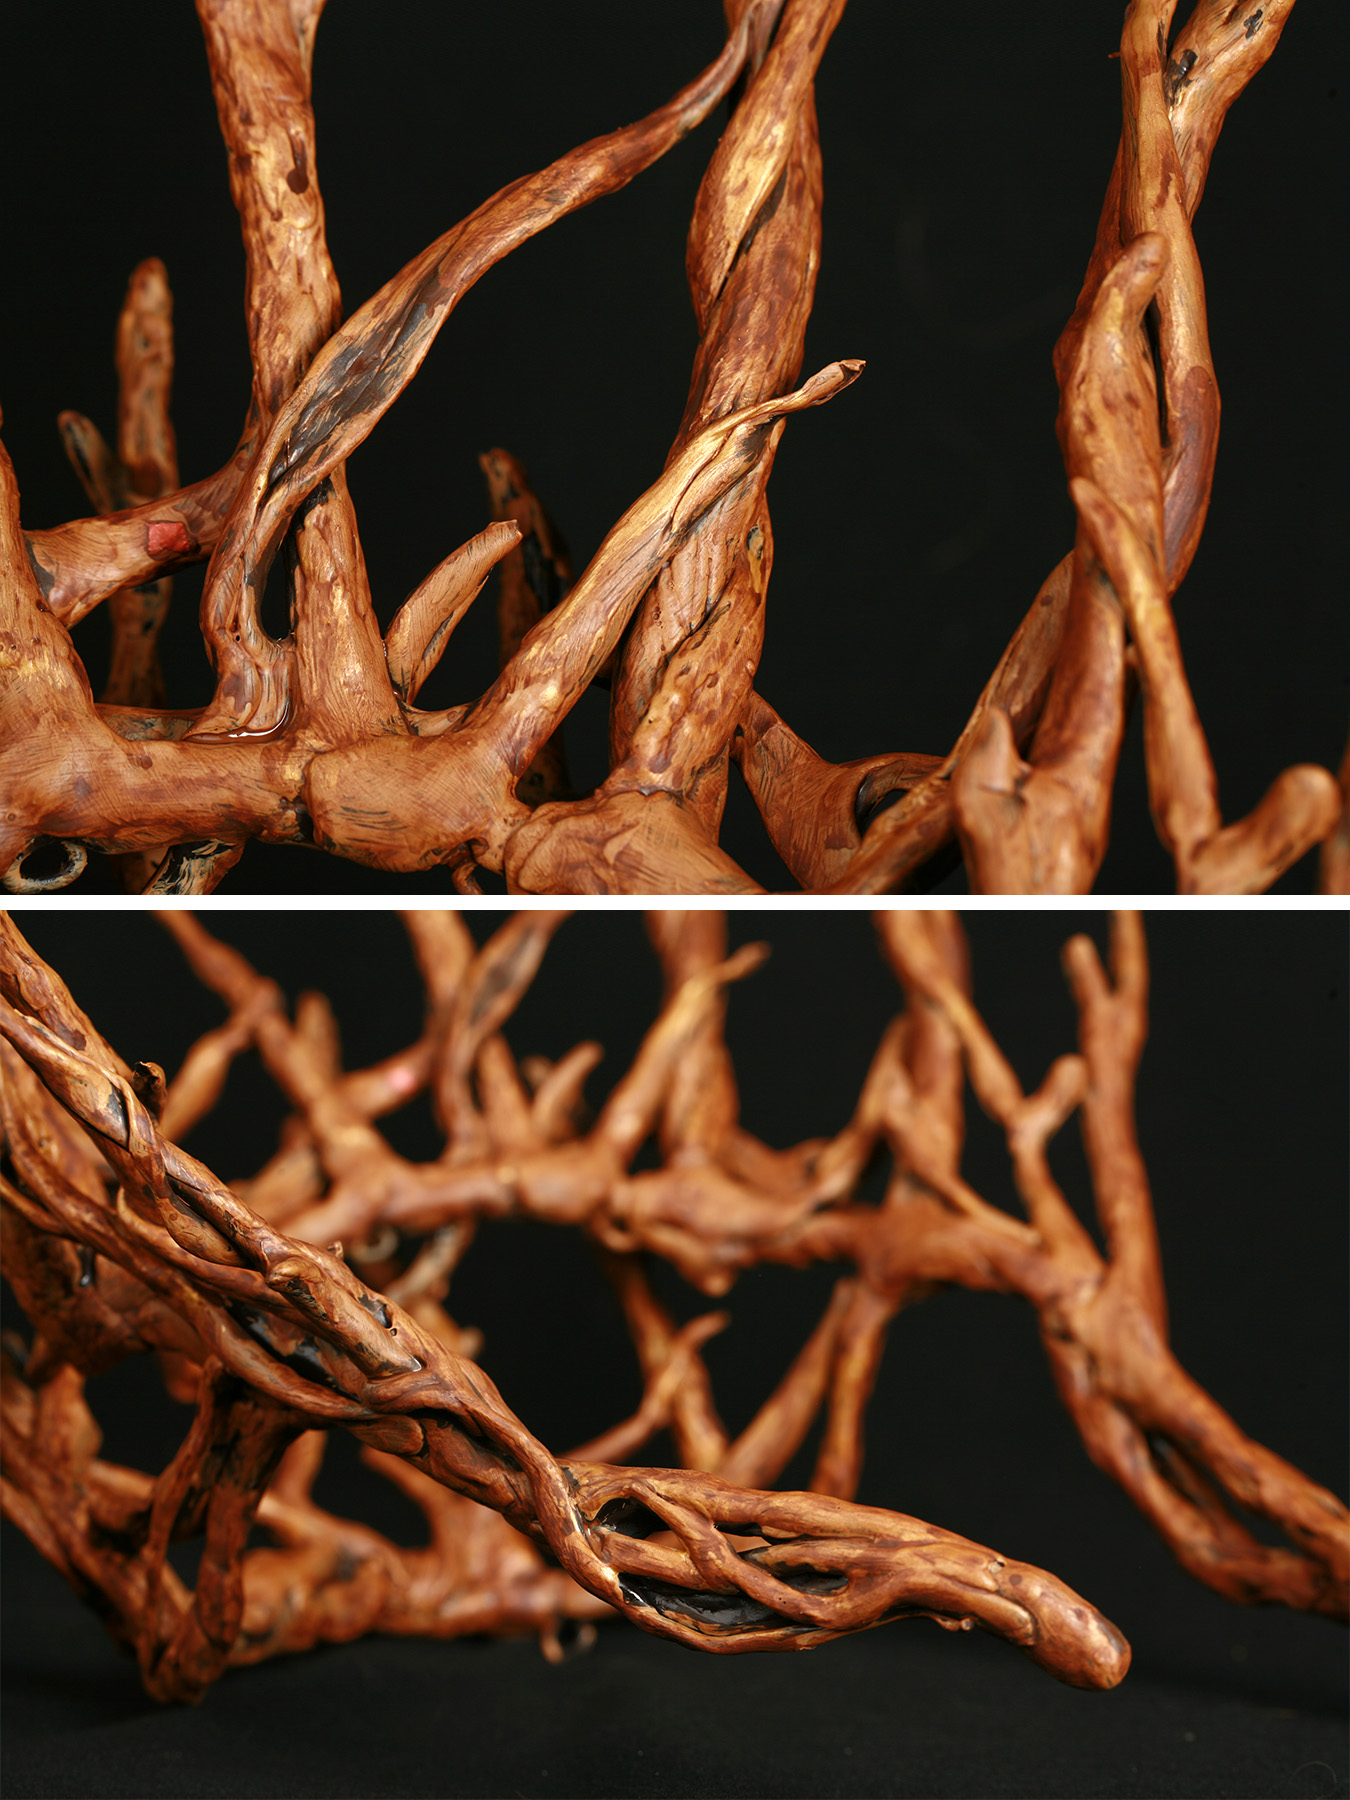 A multi part image showing differnt views of a plastic replica of Thranduil's crown, painted to look realistically like wooden twigs.